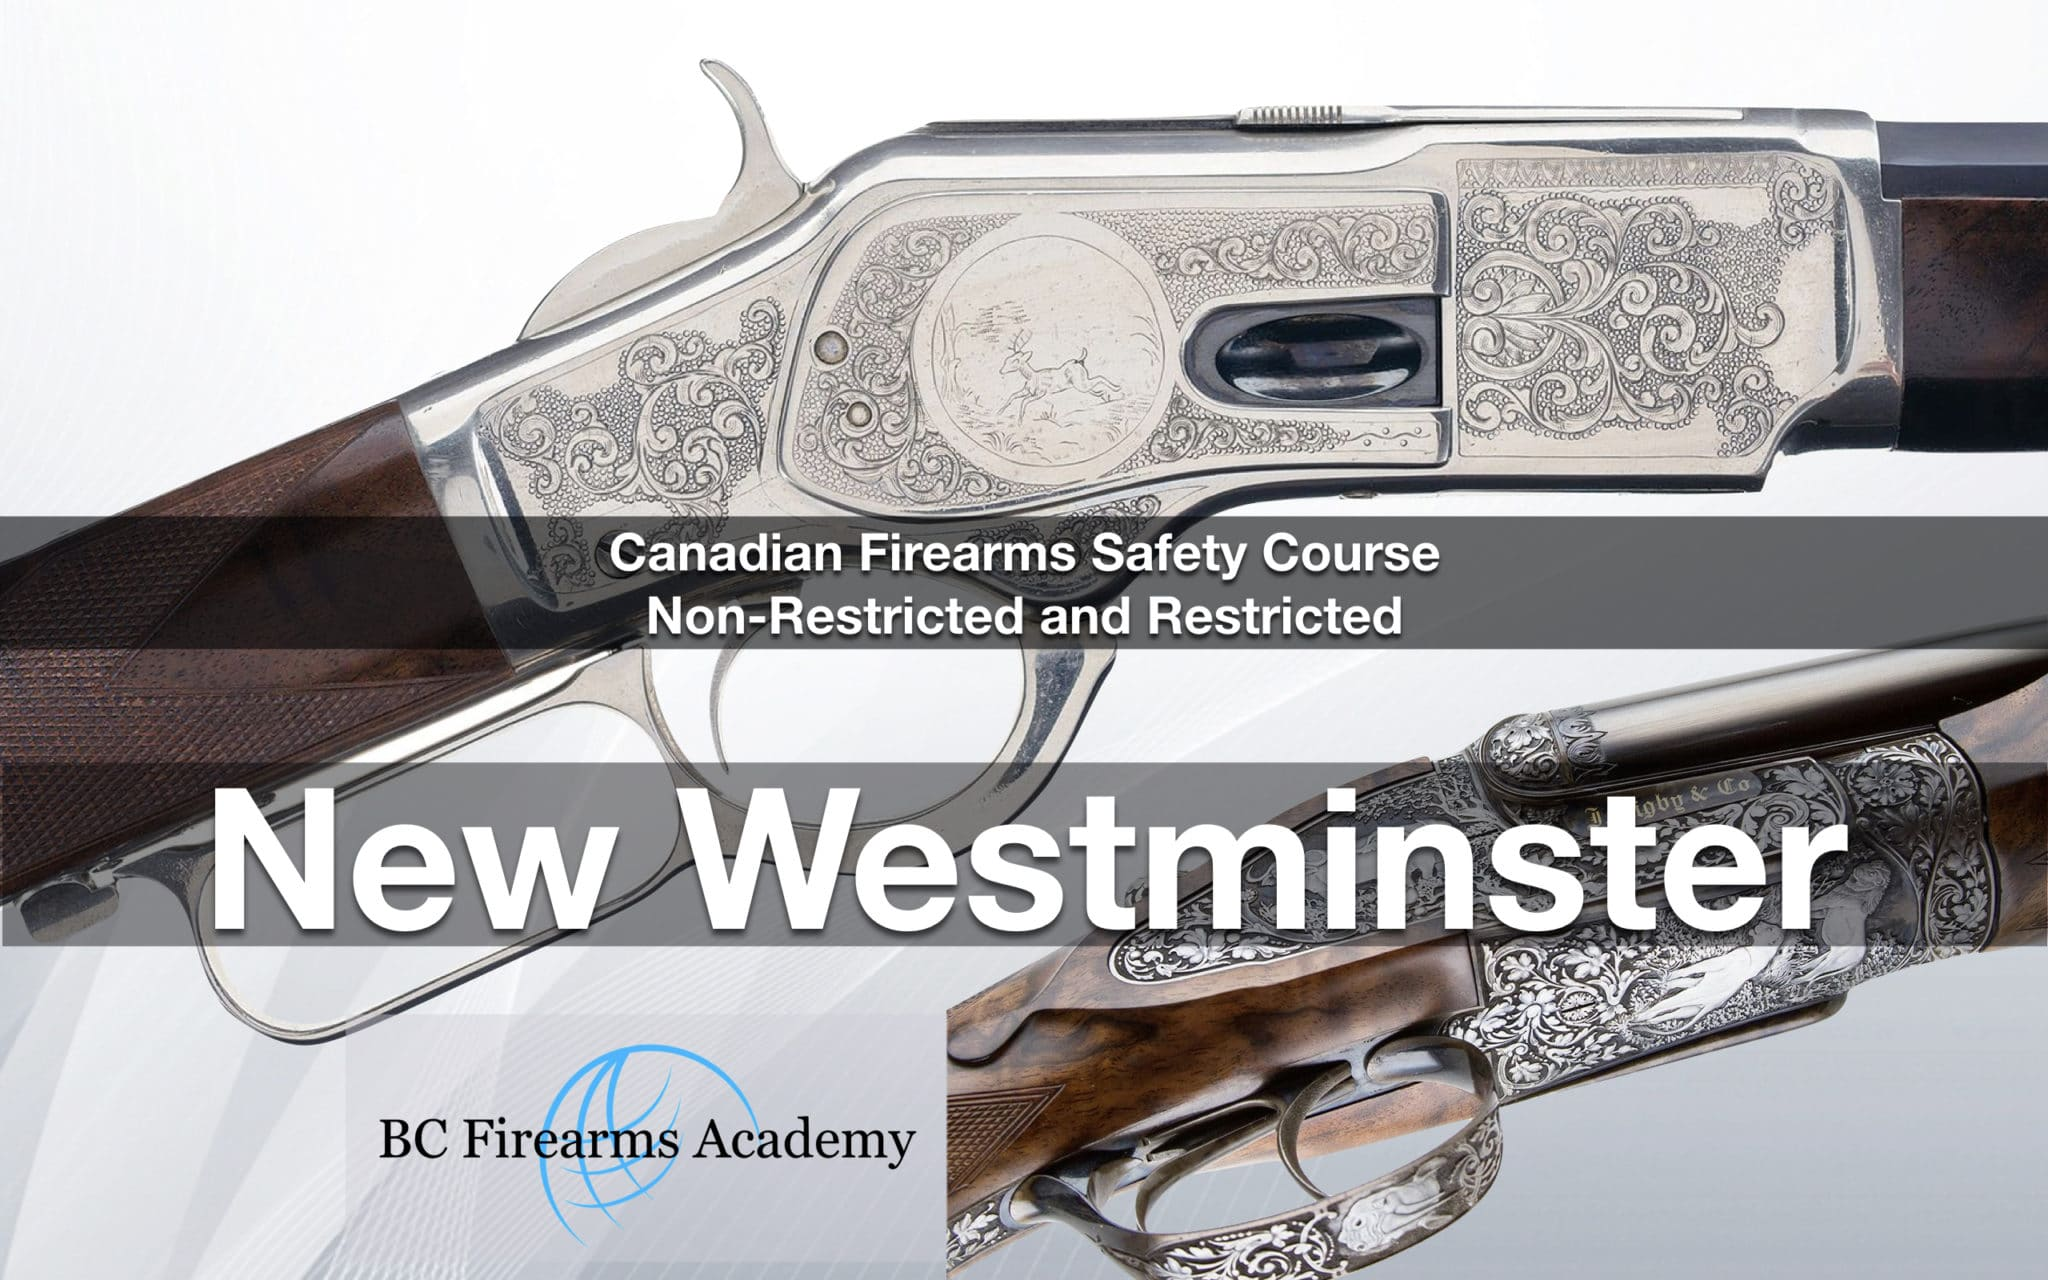 PAL Course Canadian Firearms & Restricted Safety Course JIBC New Westminster Mar 2/3 Sat/Sun